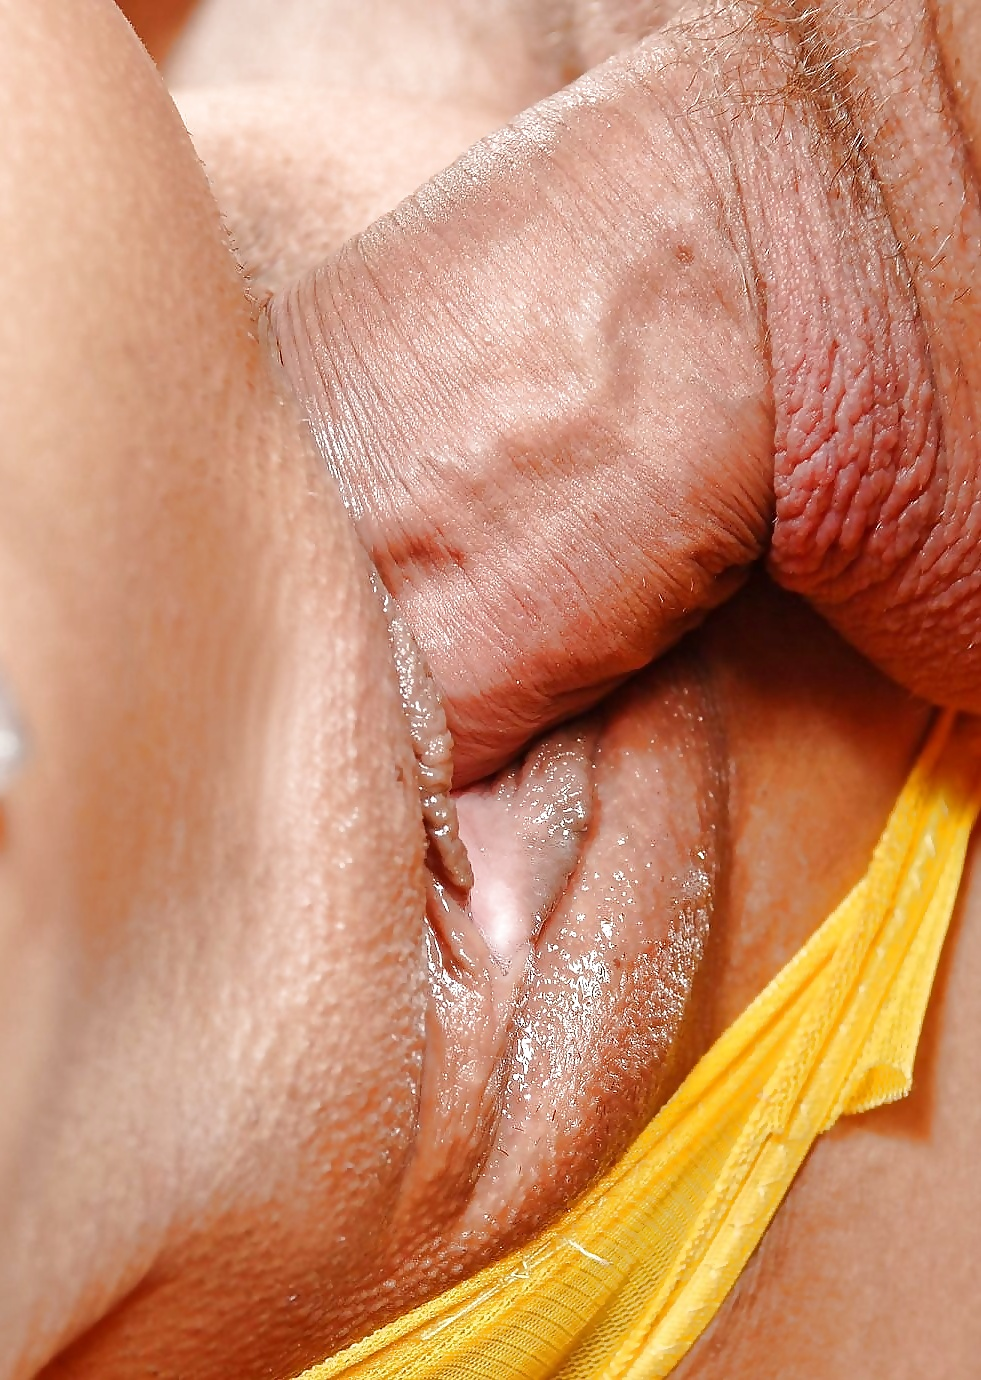 No period but bleeding after intercourse-7265